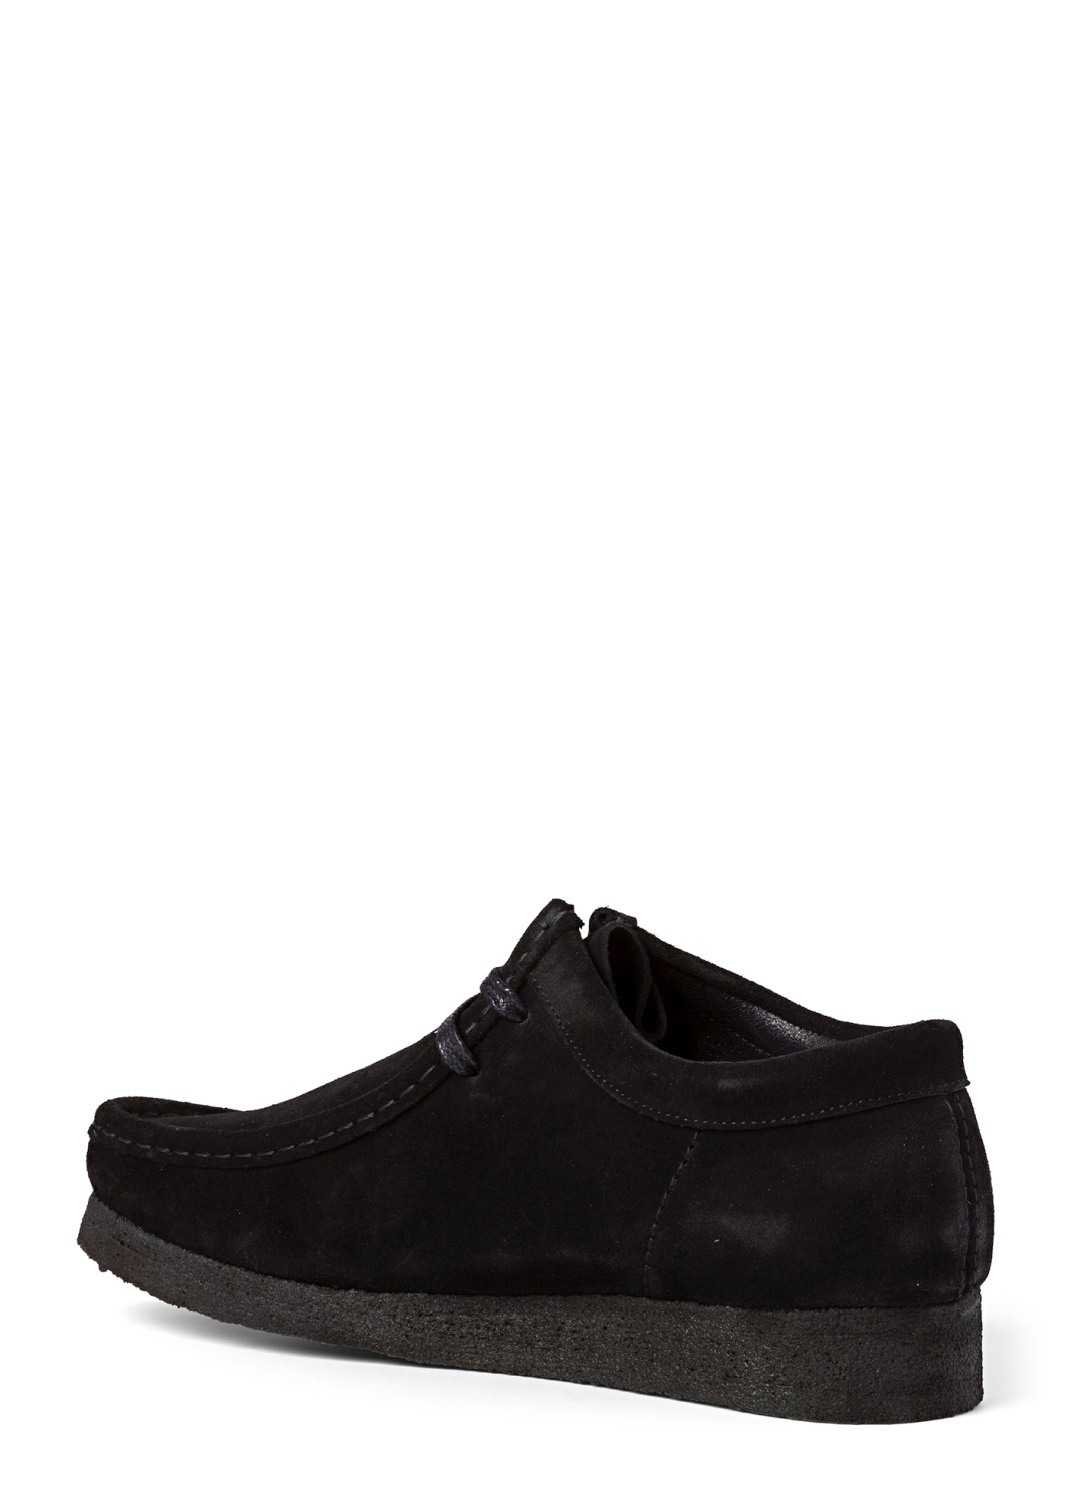 WALLABEE SUEDE  BLACK WHITE image number 2